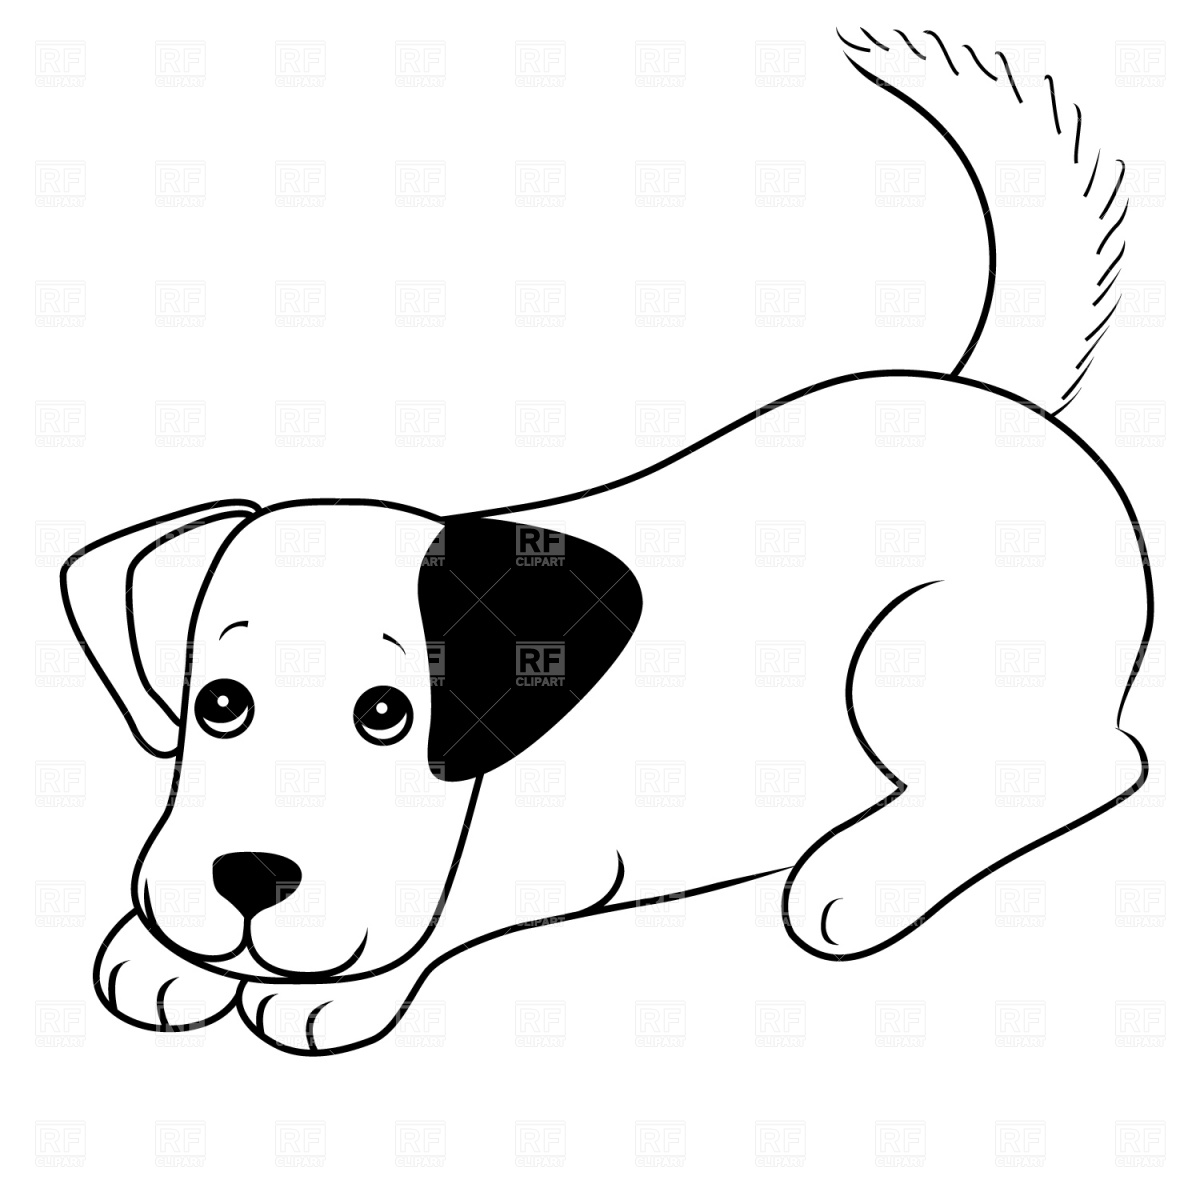 Cute happy dog clipart black and white svg black and white download Dog Pictures Free | Free download best Dog Pictures Free on ... svg black and white download